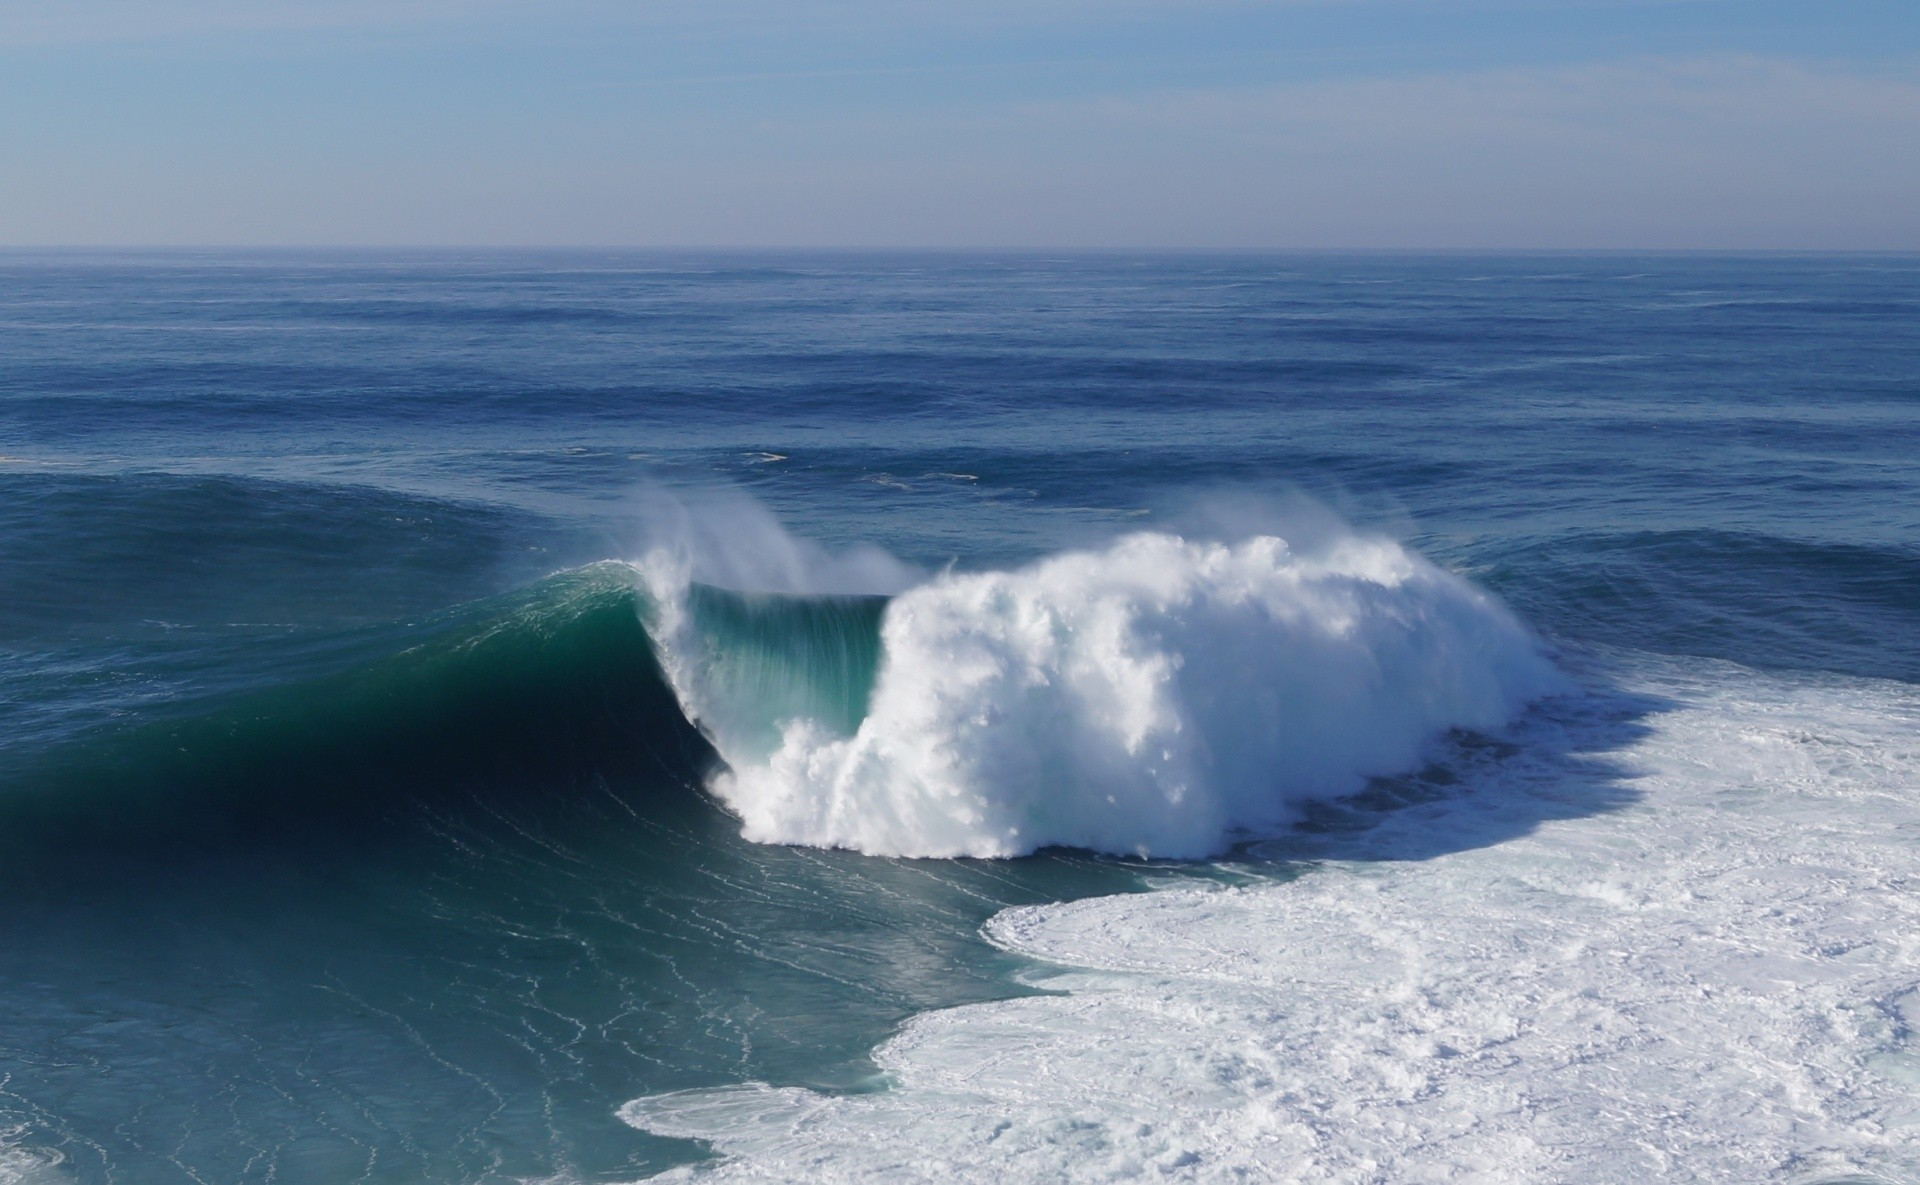 Elena Semenova's photo of Nazaré